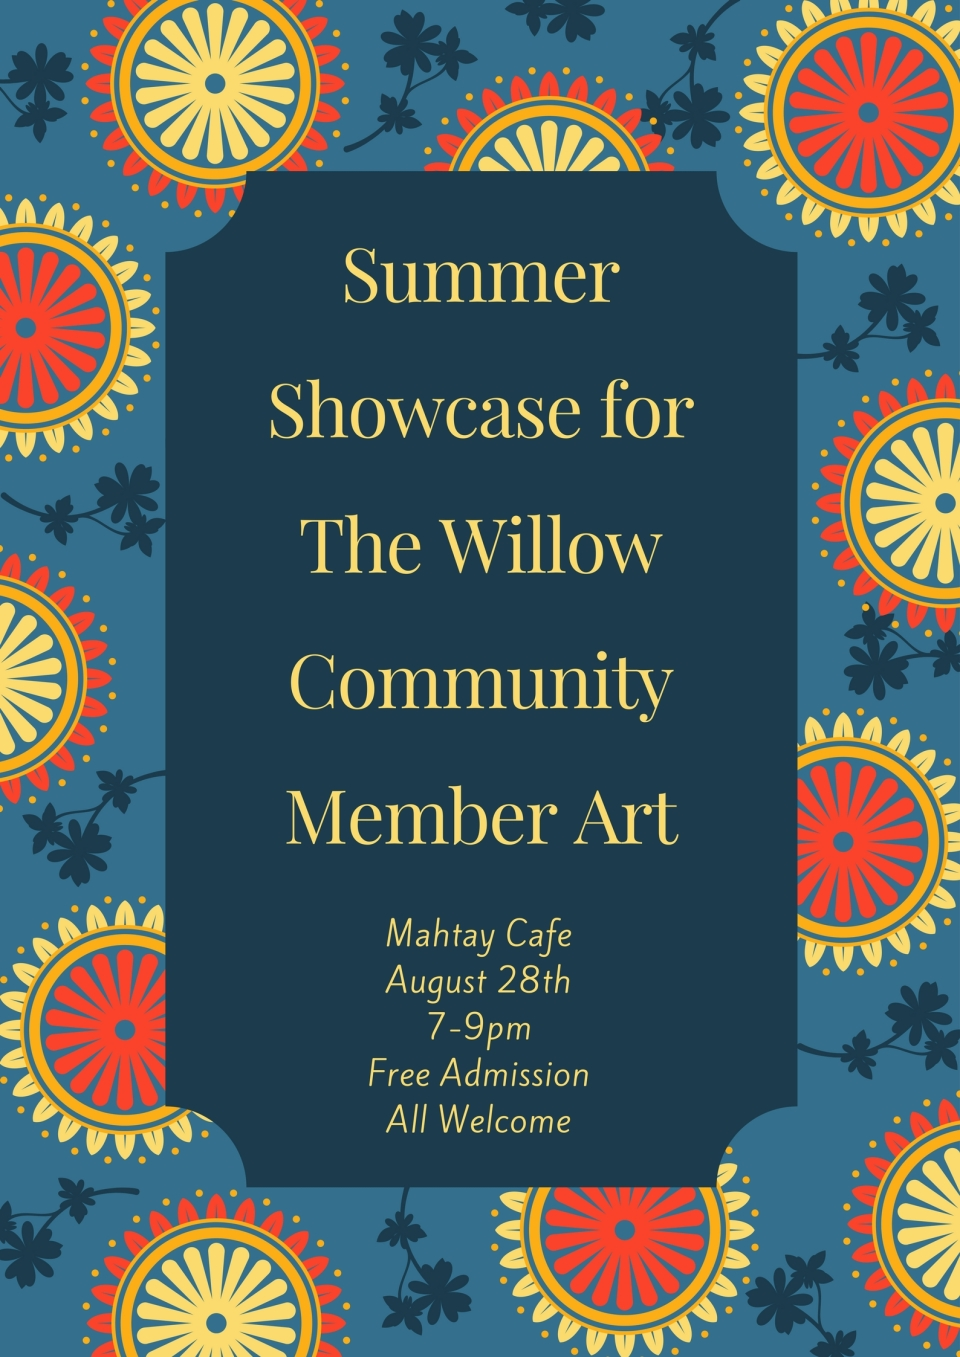 Summer Showcase for The Willow Community